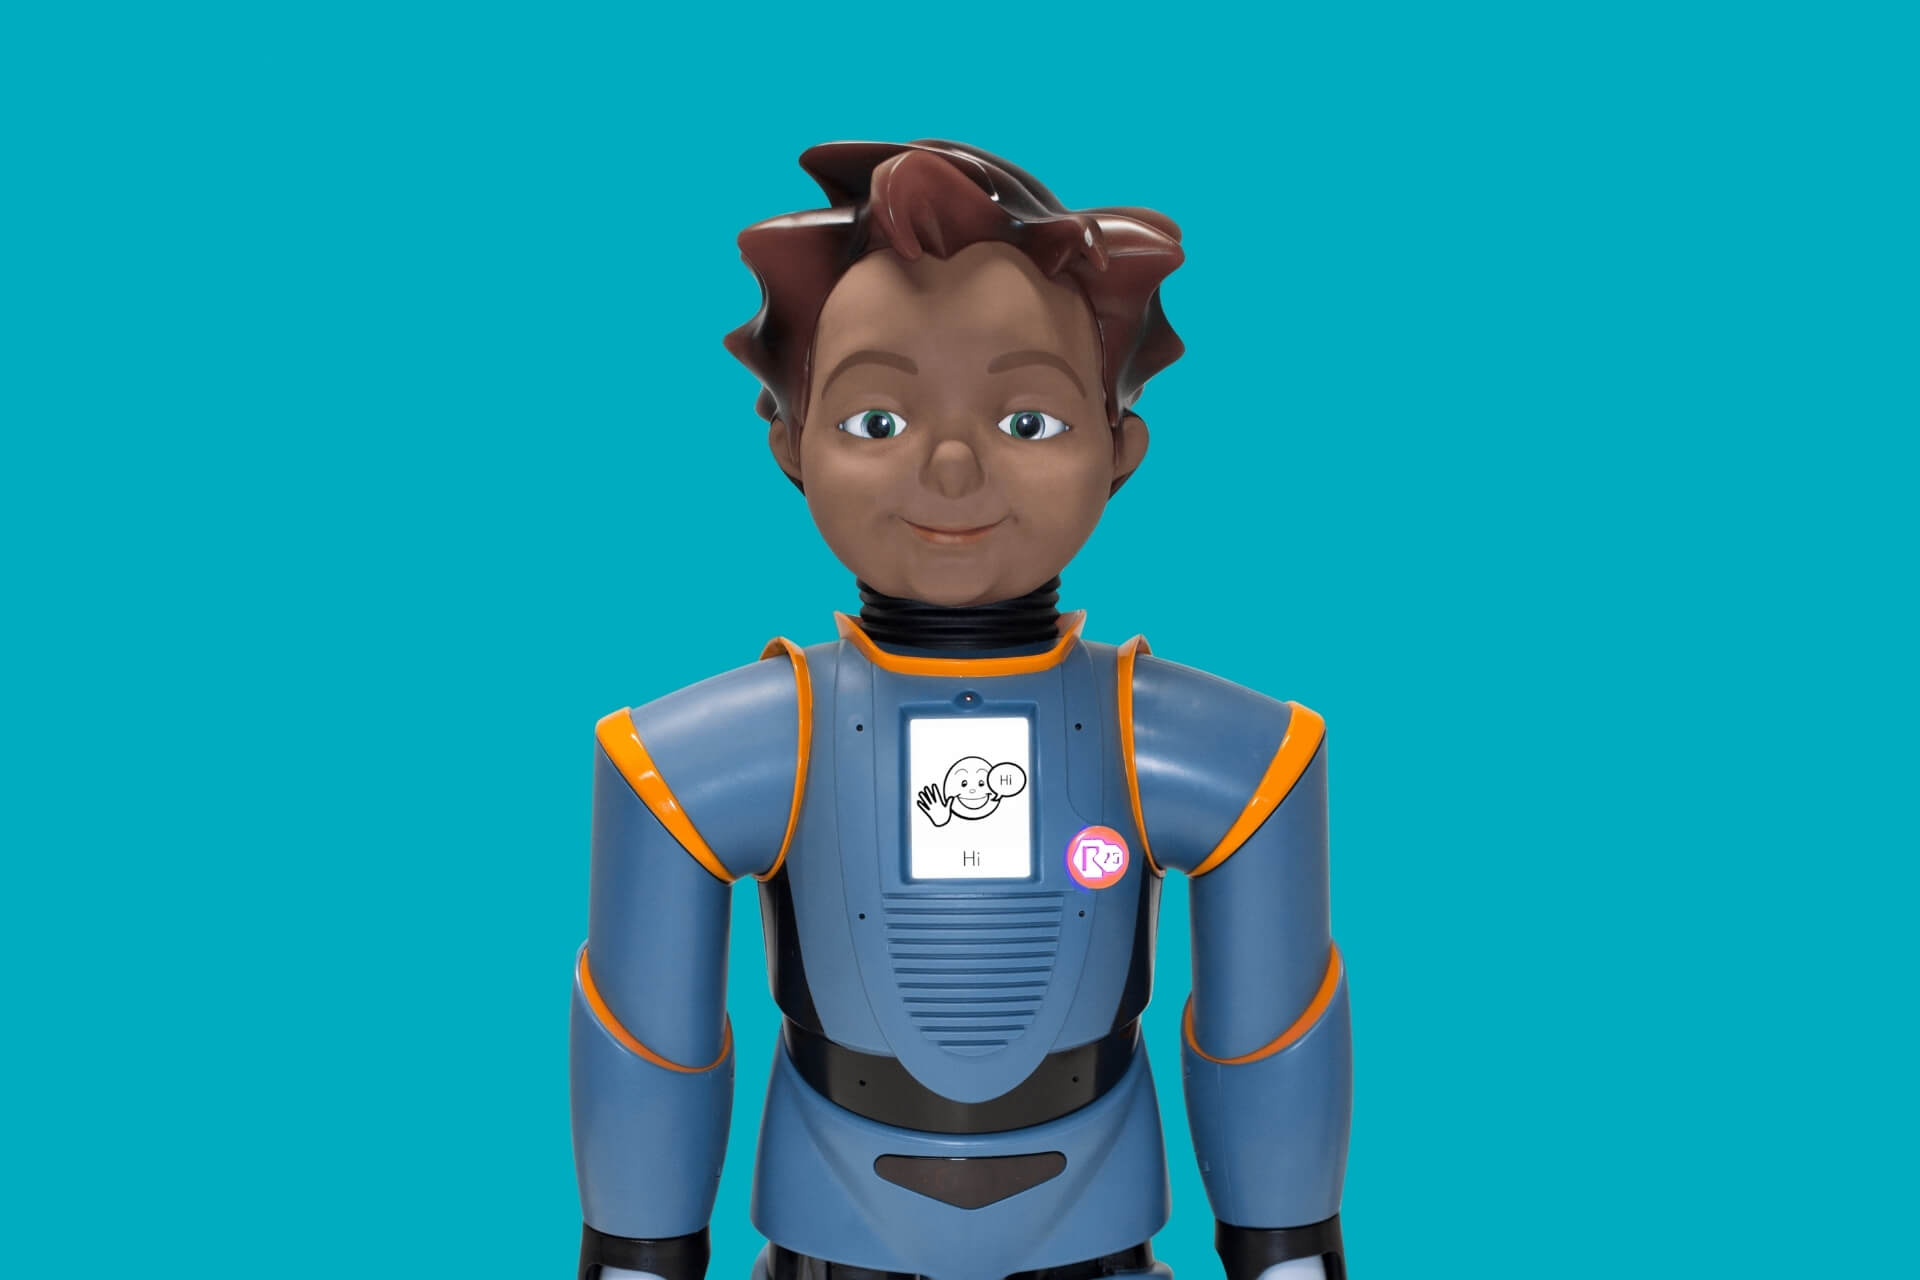 Carver, Assistive Robot for Students With ASD